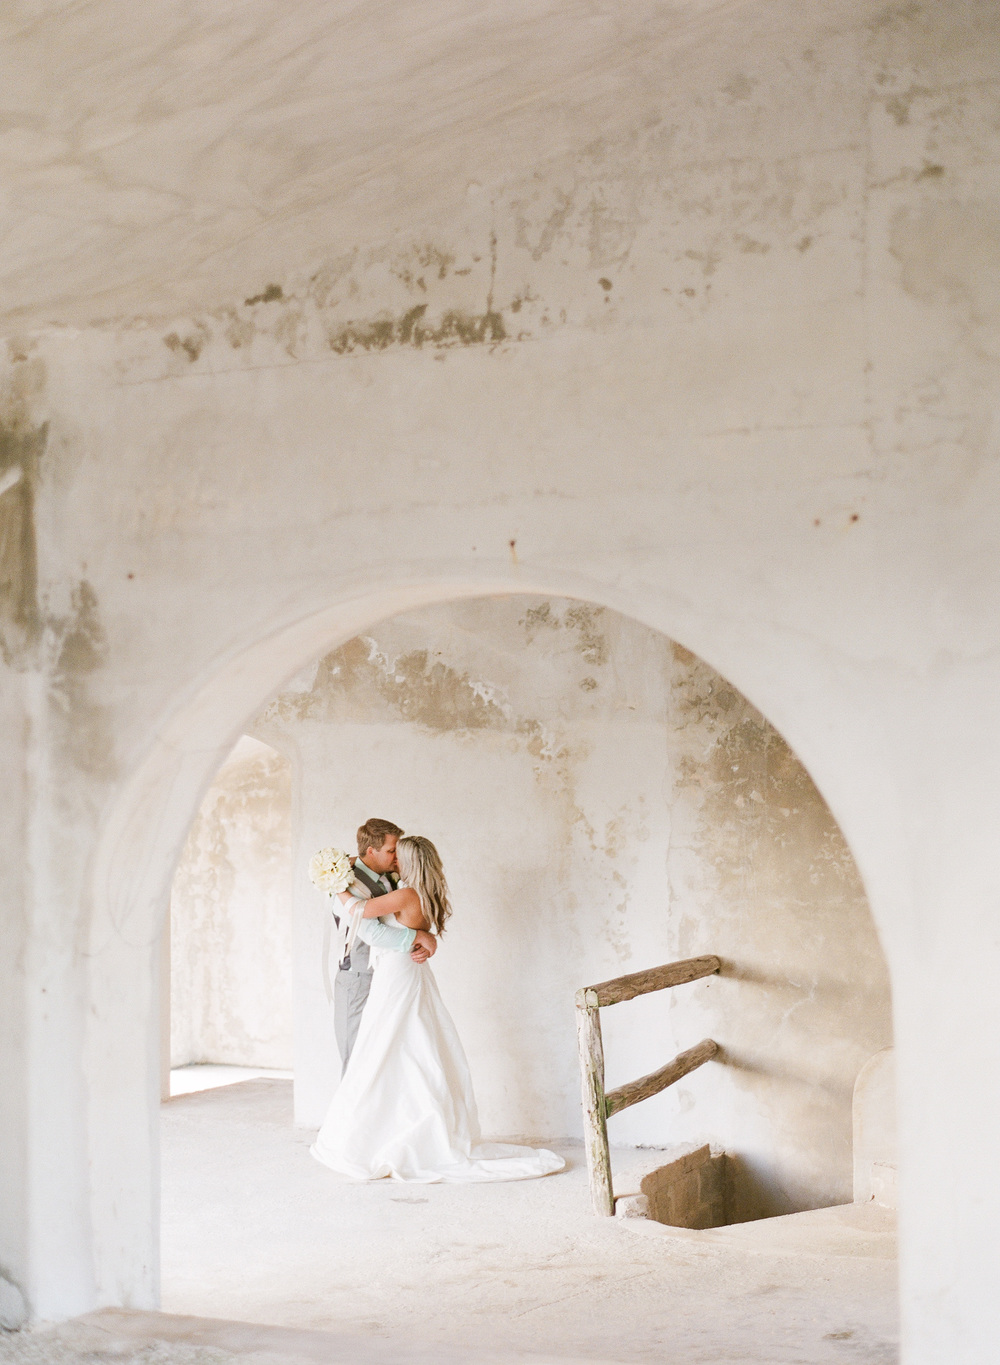 SECRETS MAROMA BEACH WEDDING PHOTOGRAPHER, ABANDONDED MANSION WEDDING PHOTOGRAPHY, TOP DESTINATION WEDDING PHOTOGRAPHER wwwDOTlexiafrankDOTcom